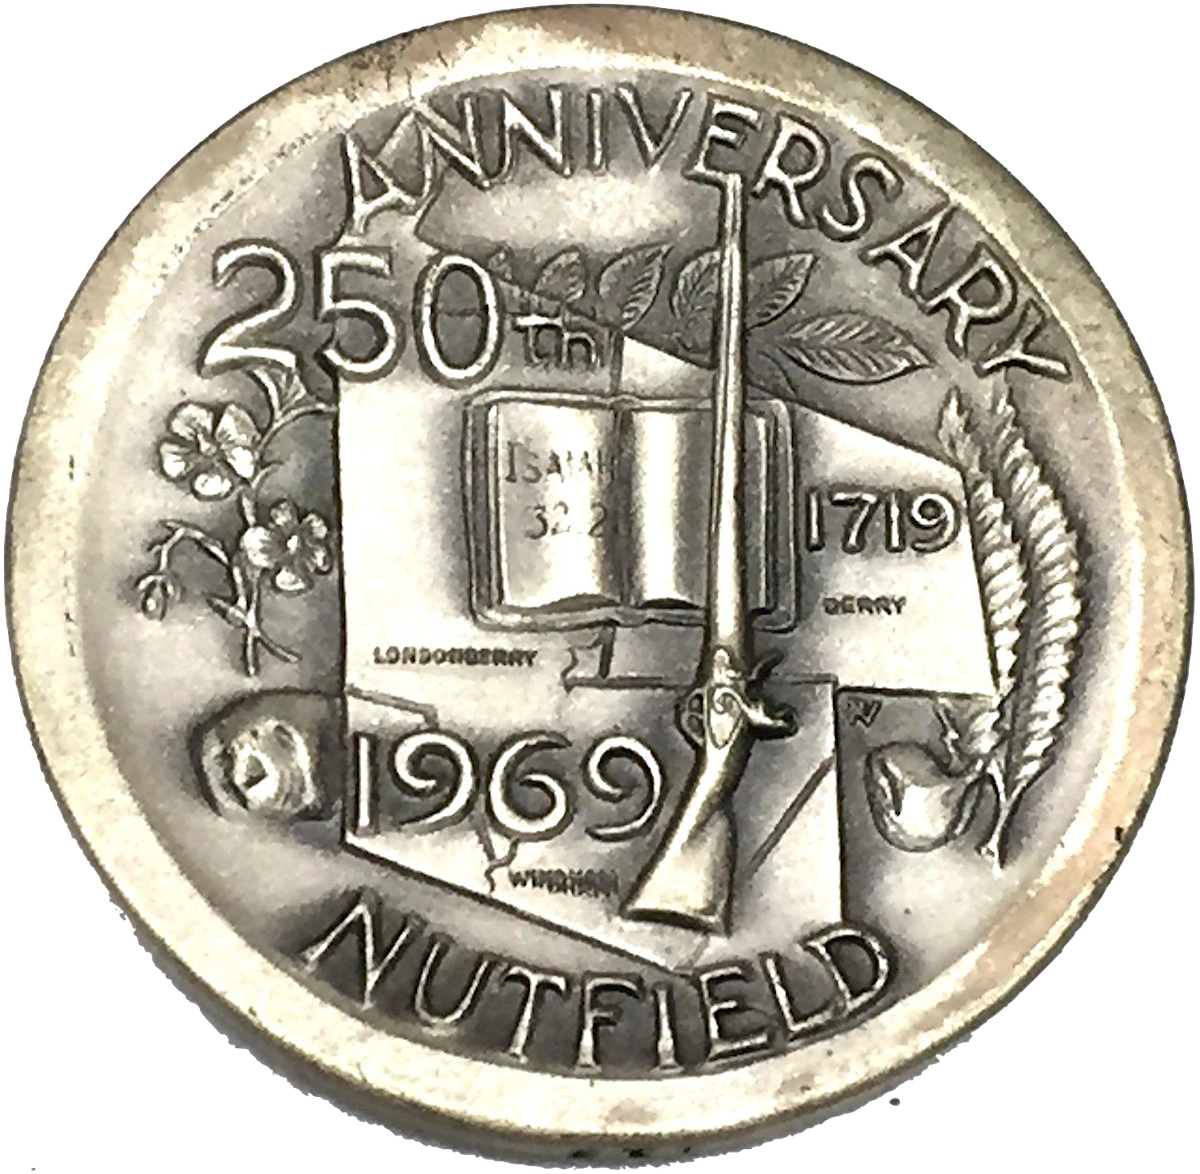 nutfield 250th medal silver.png